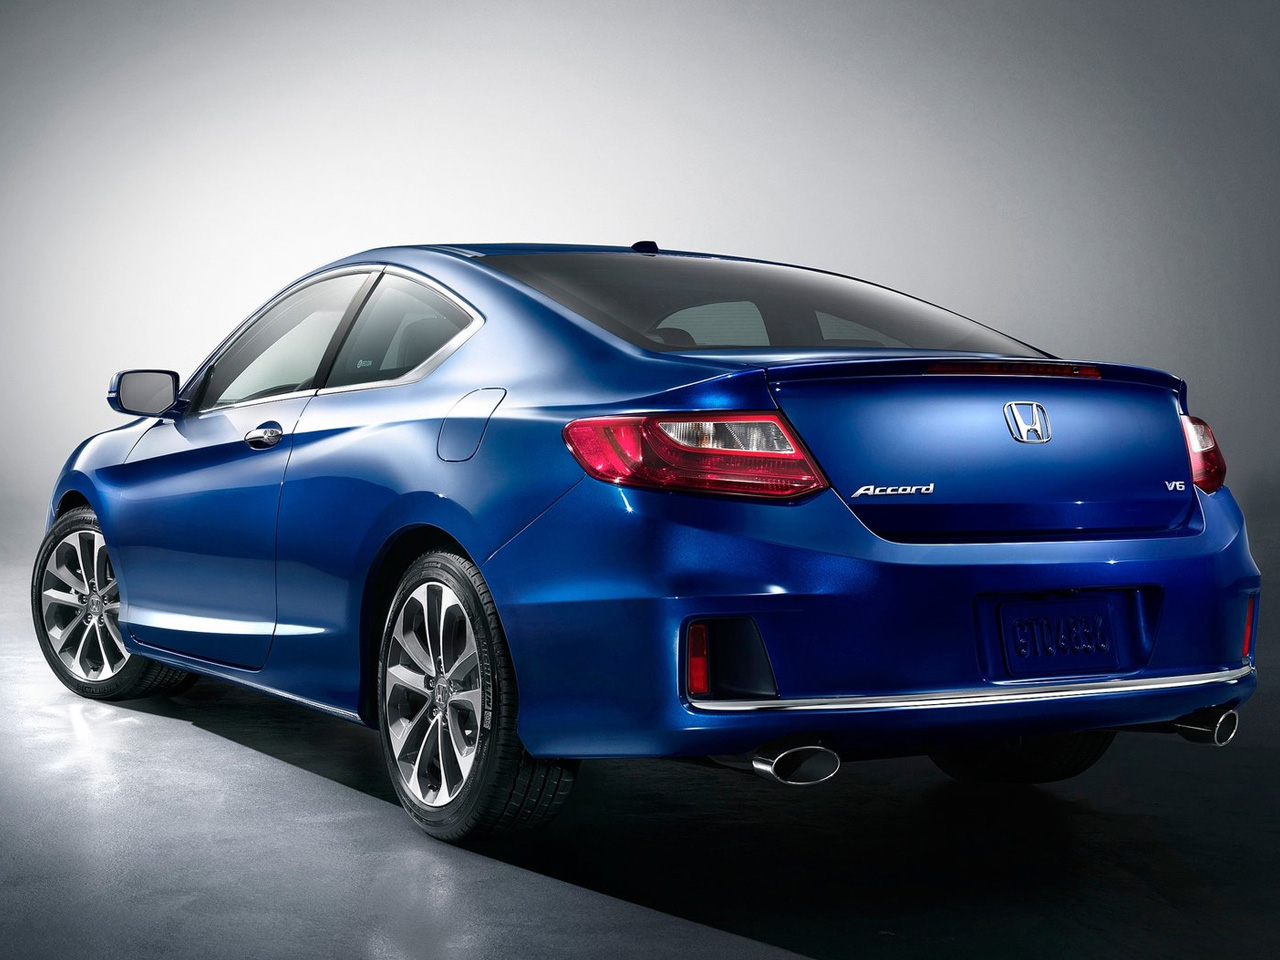 Honda accord 2013 review for Honda accord used 2013